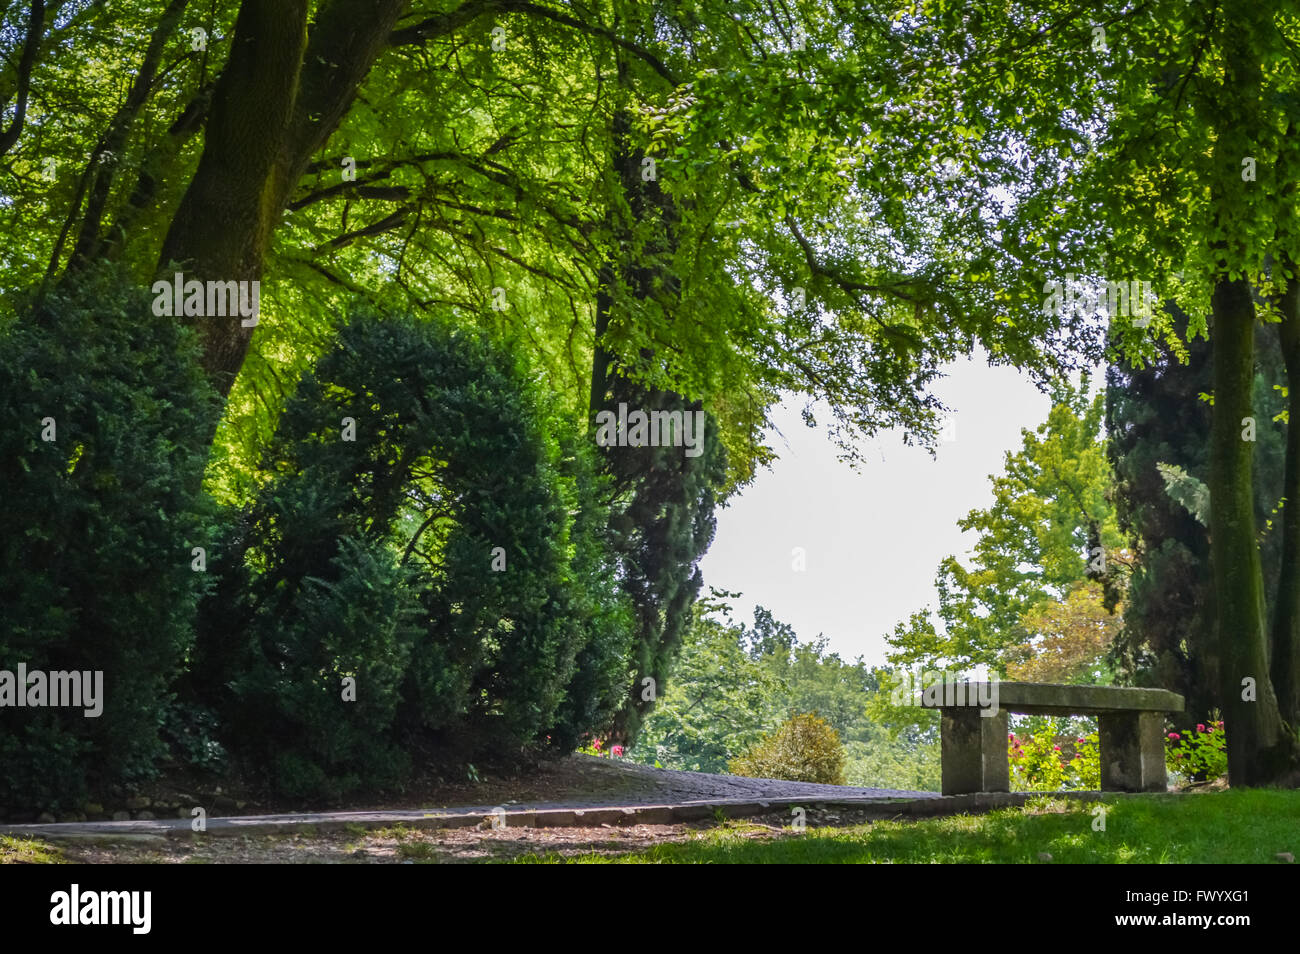 stone bench under the trees in a park - Stock Image